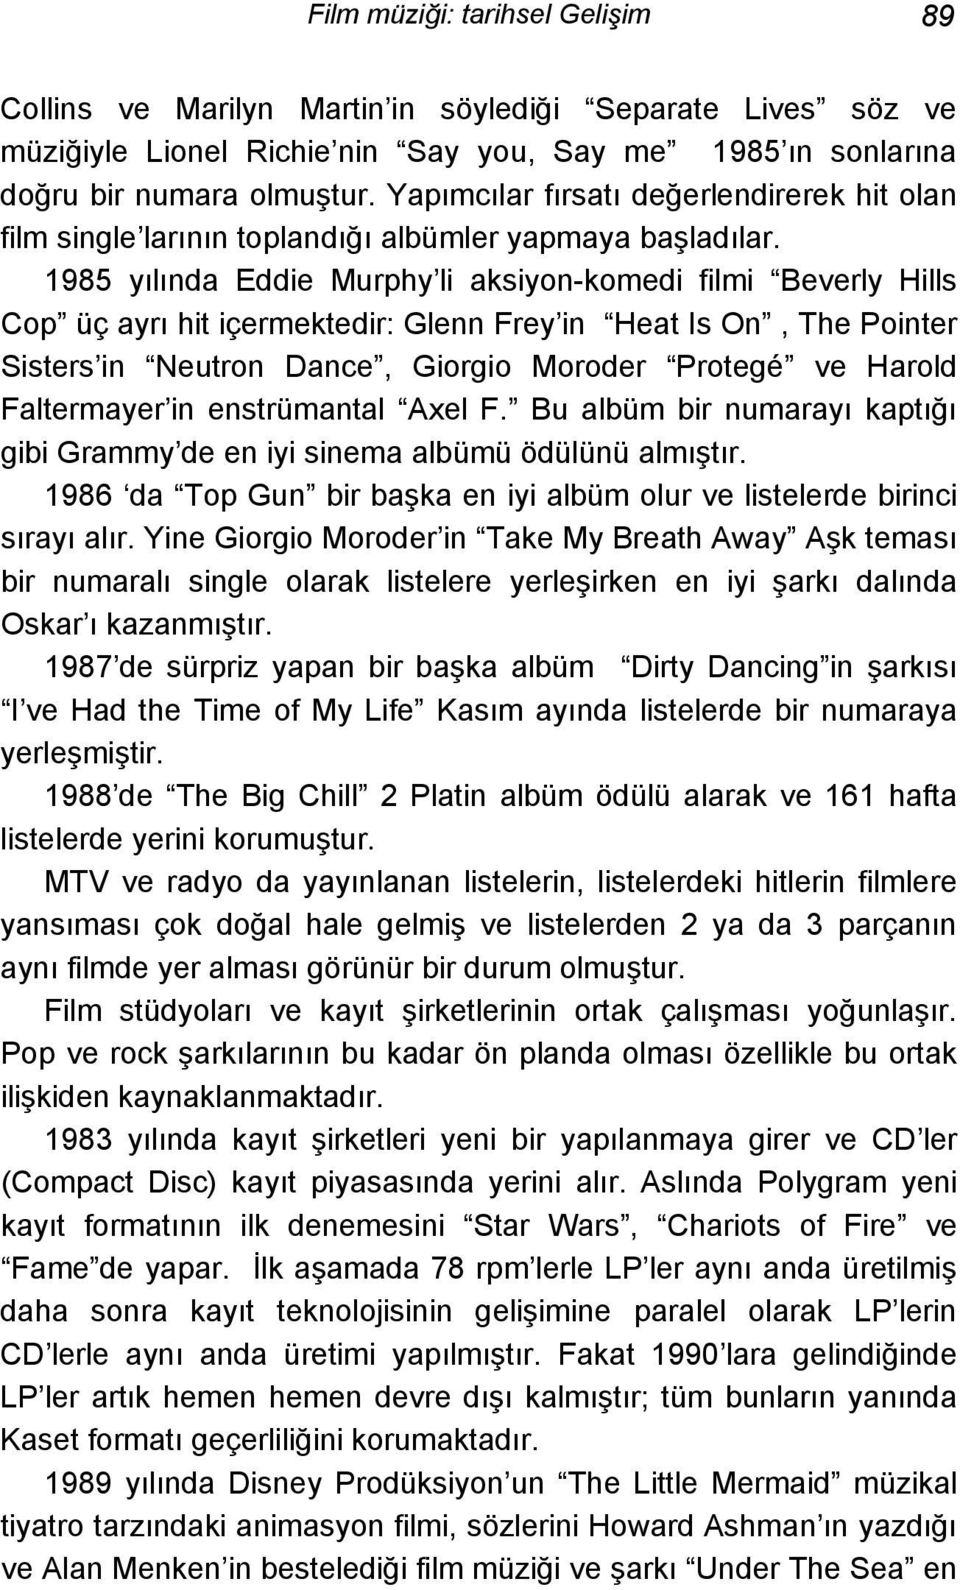 1985 yılında Eddie Murphy li aksiyon-komedi filmi Beverly Hills Cop üç ayrı hit içermektedir: Glenn Frey in Heat Is On, The Pointer Sisters in Neutron Dance, Giorgio Moroder Protegé ve Harold